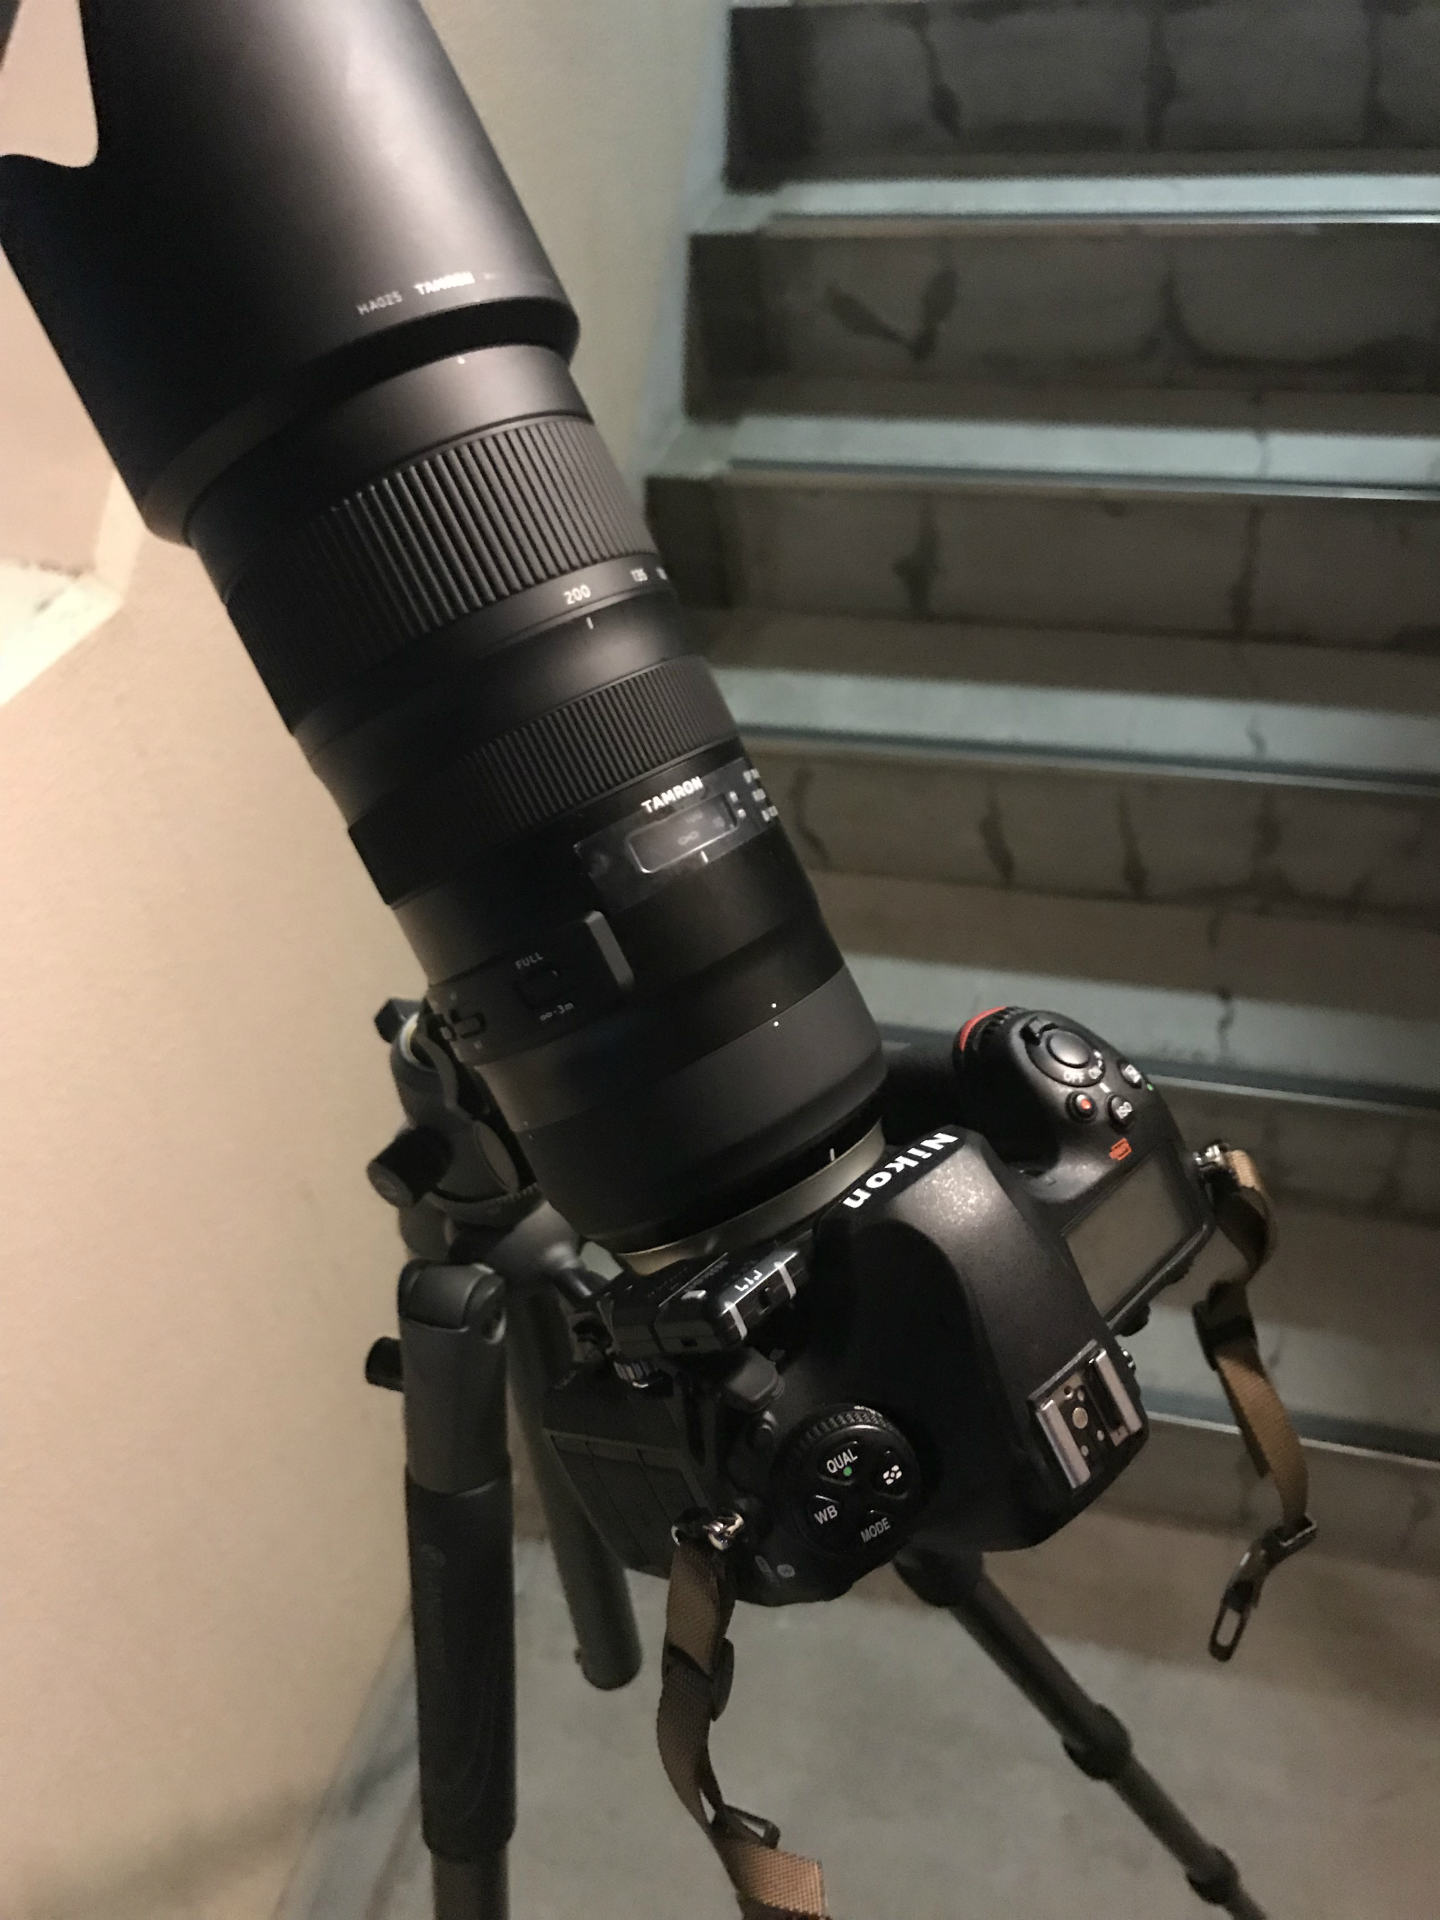 Nikon D850 SP 70-200mm F/2.8 Di VC USD G2 VEO 2 265CB